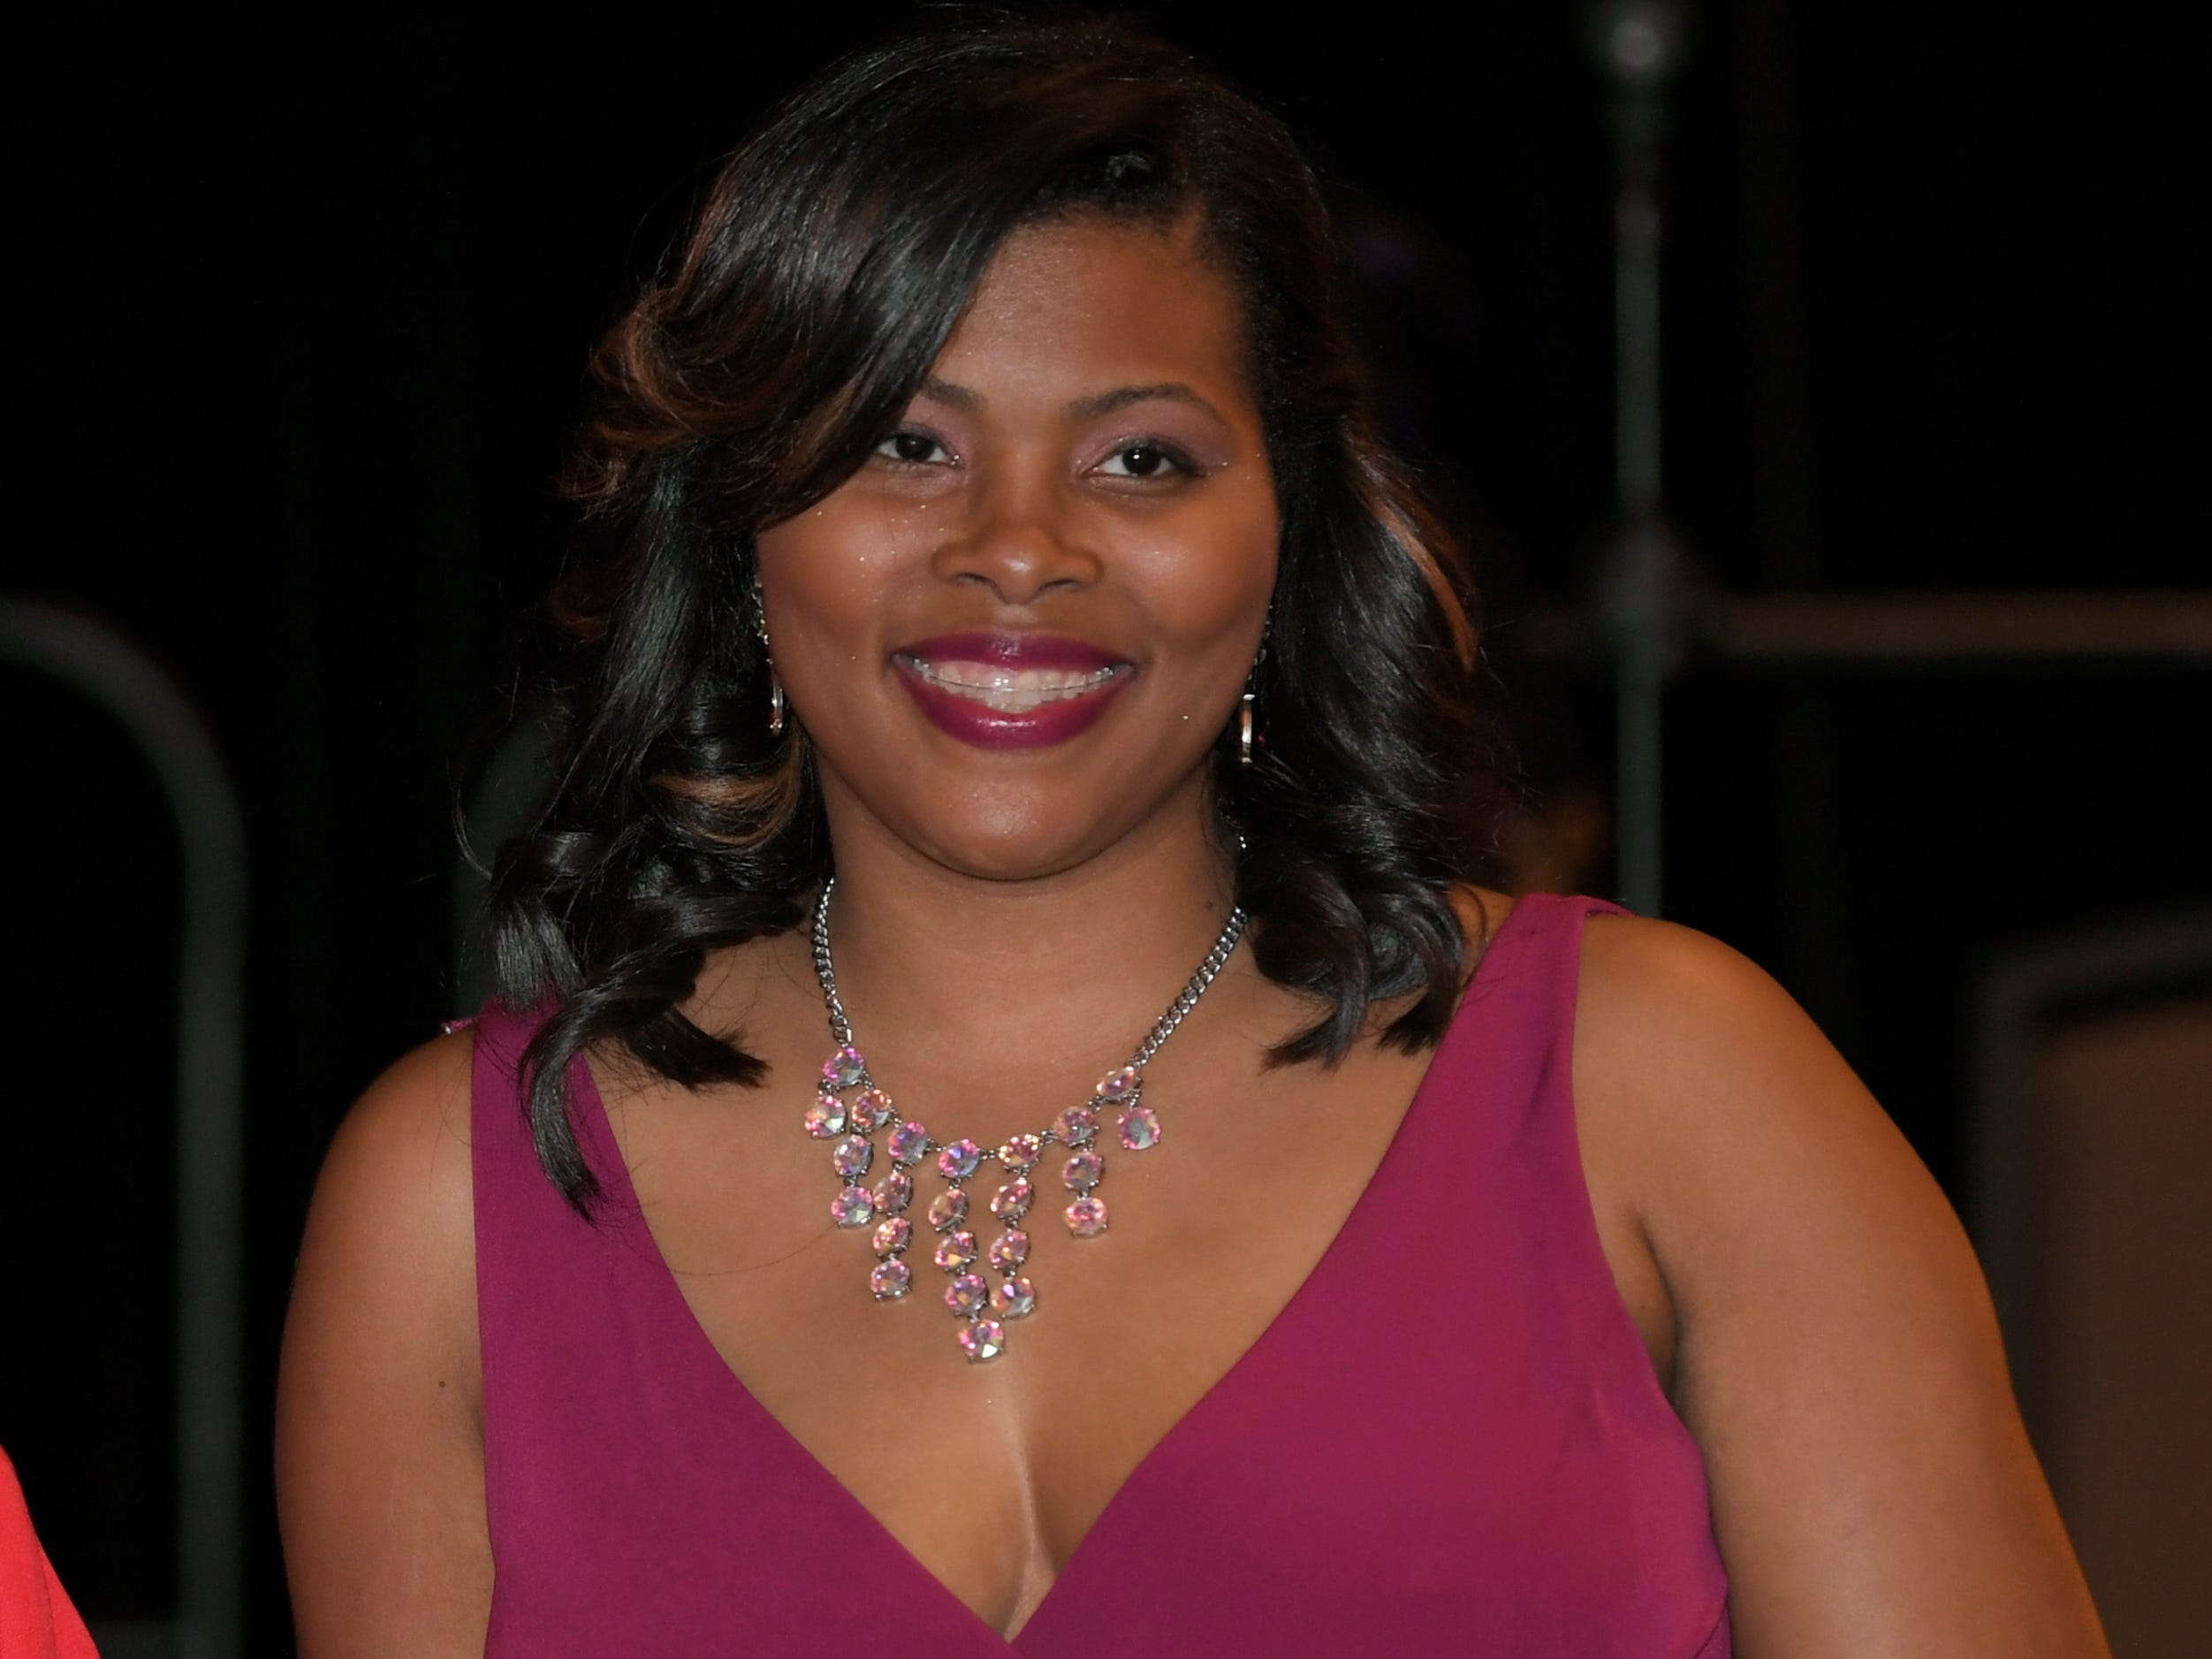 Martesha Johnson was honored at the African American Heritage Society's 18th Annual Black Tie Affair at the Embassy Suites in Franklin on Sat., Feb. 2, 2019.